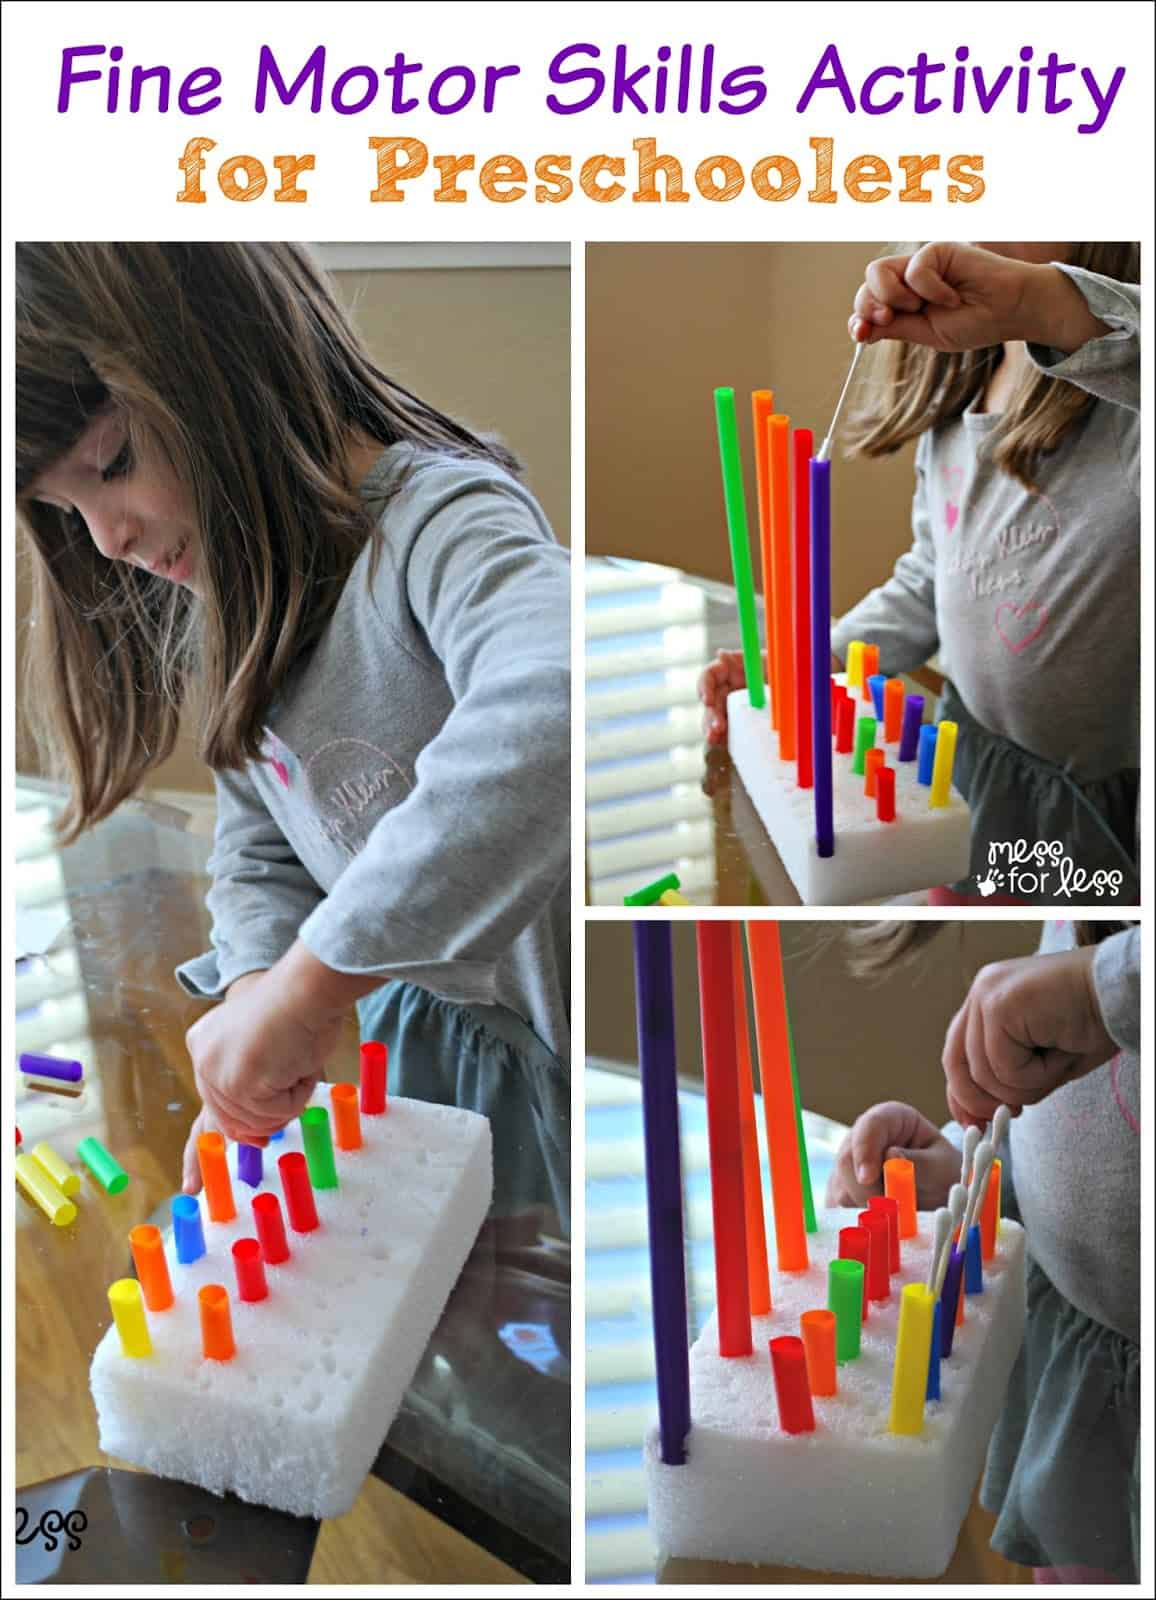 what are fine motor skills for preschoolers